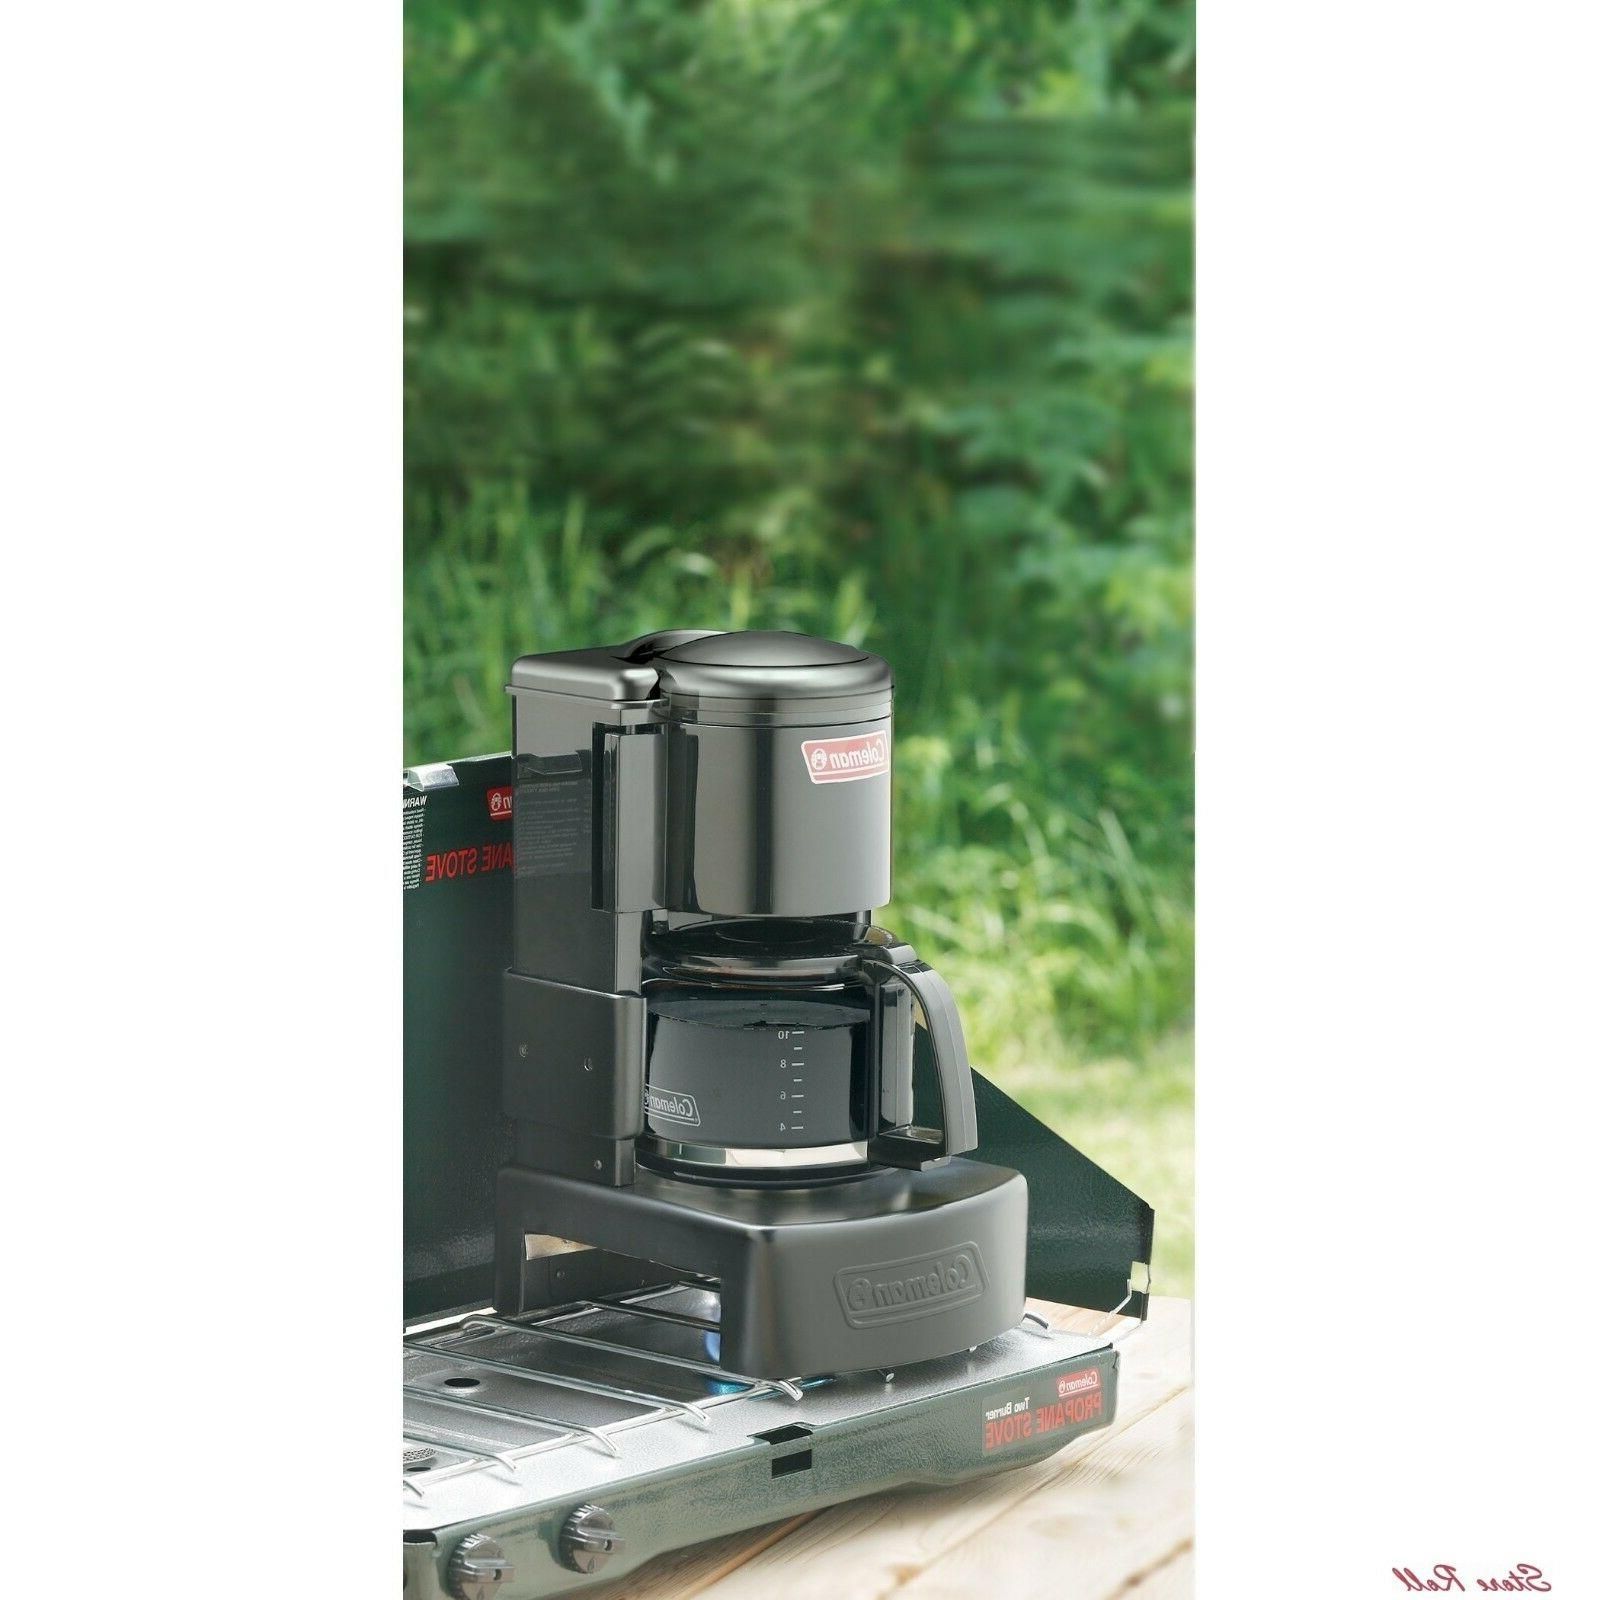 Camping Coffee Maker Kitchen Dining Supplies